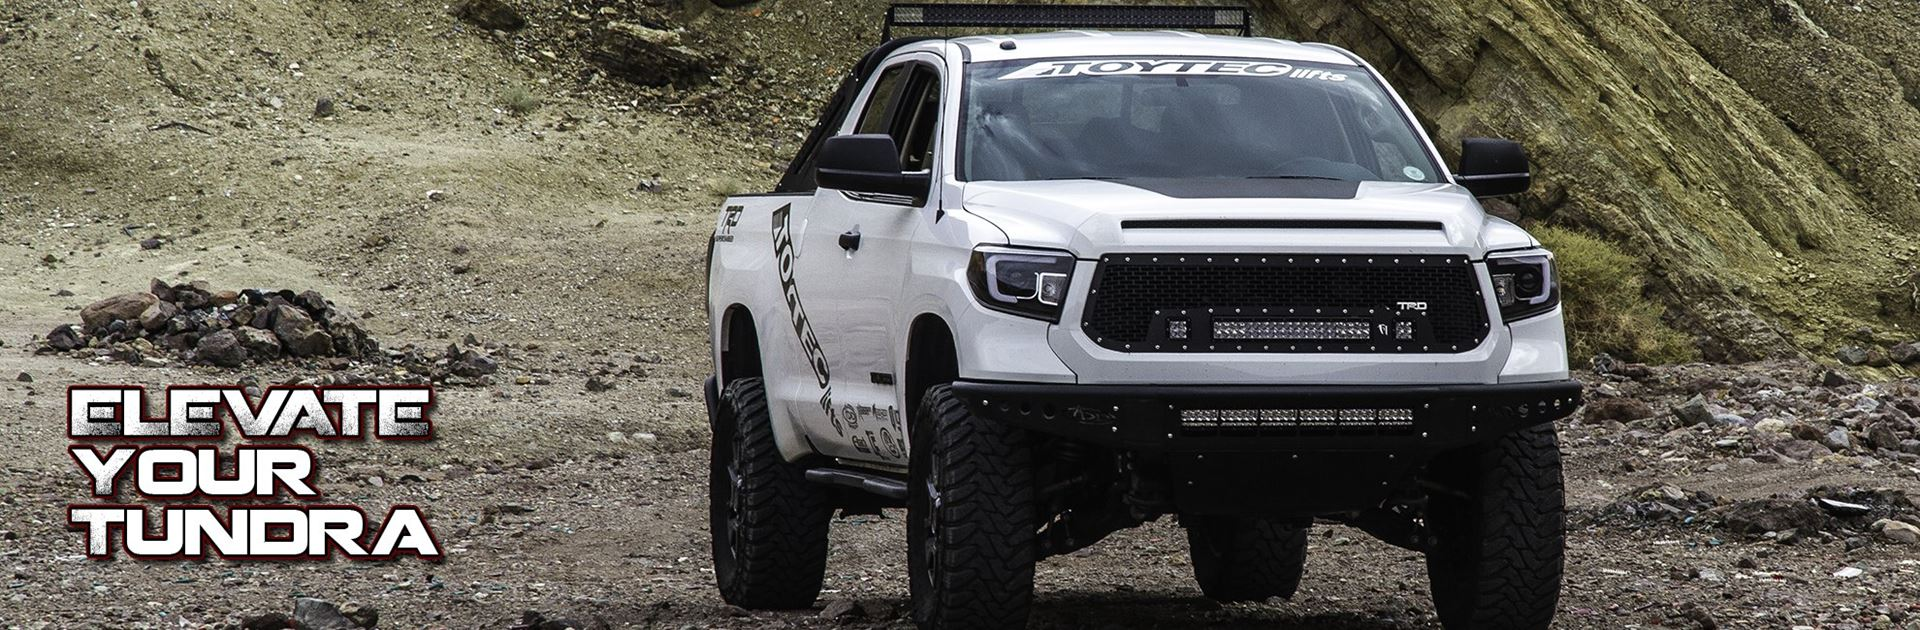 Elevate your Tundra